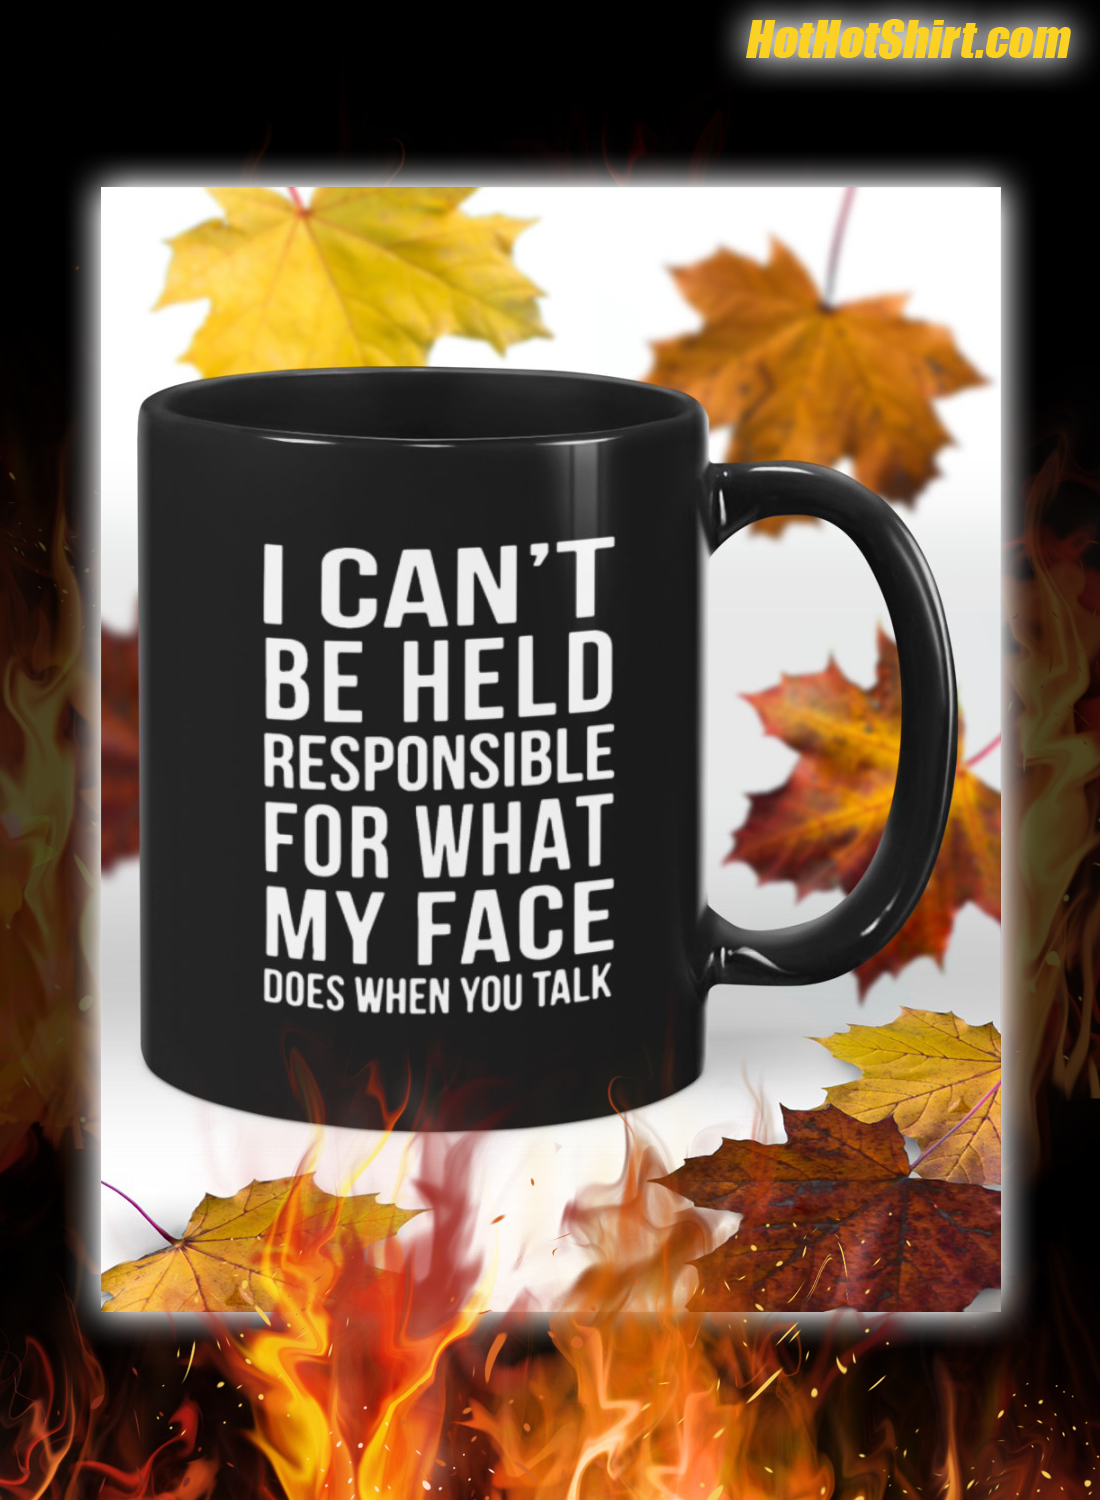 I can't be held responsible for what my face does when you talk mug